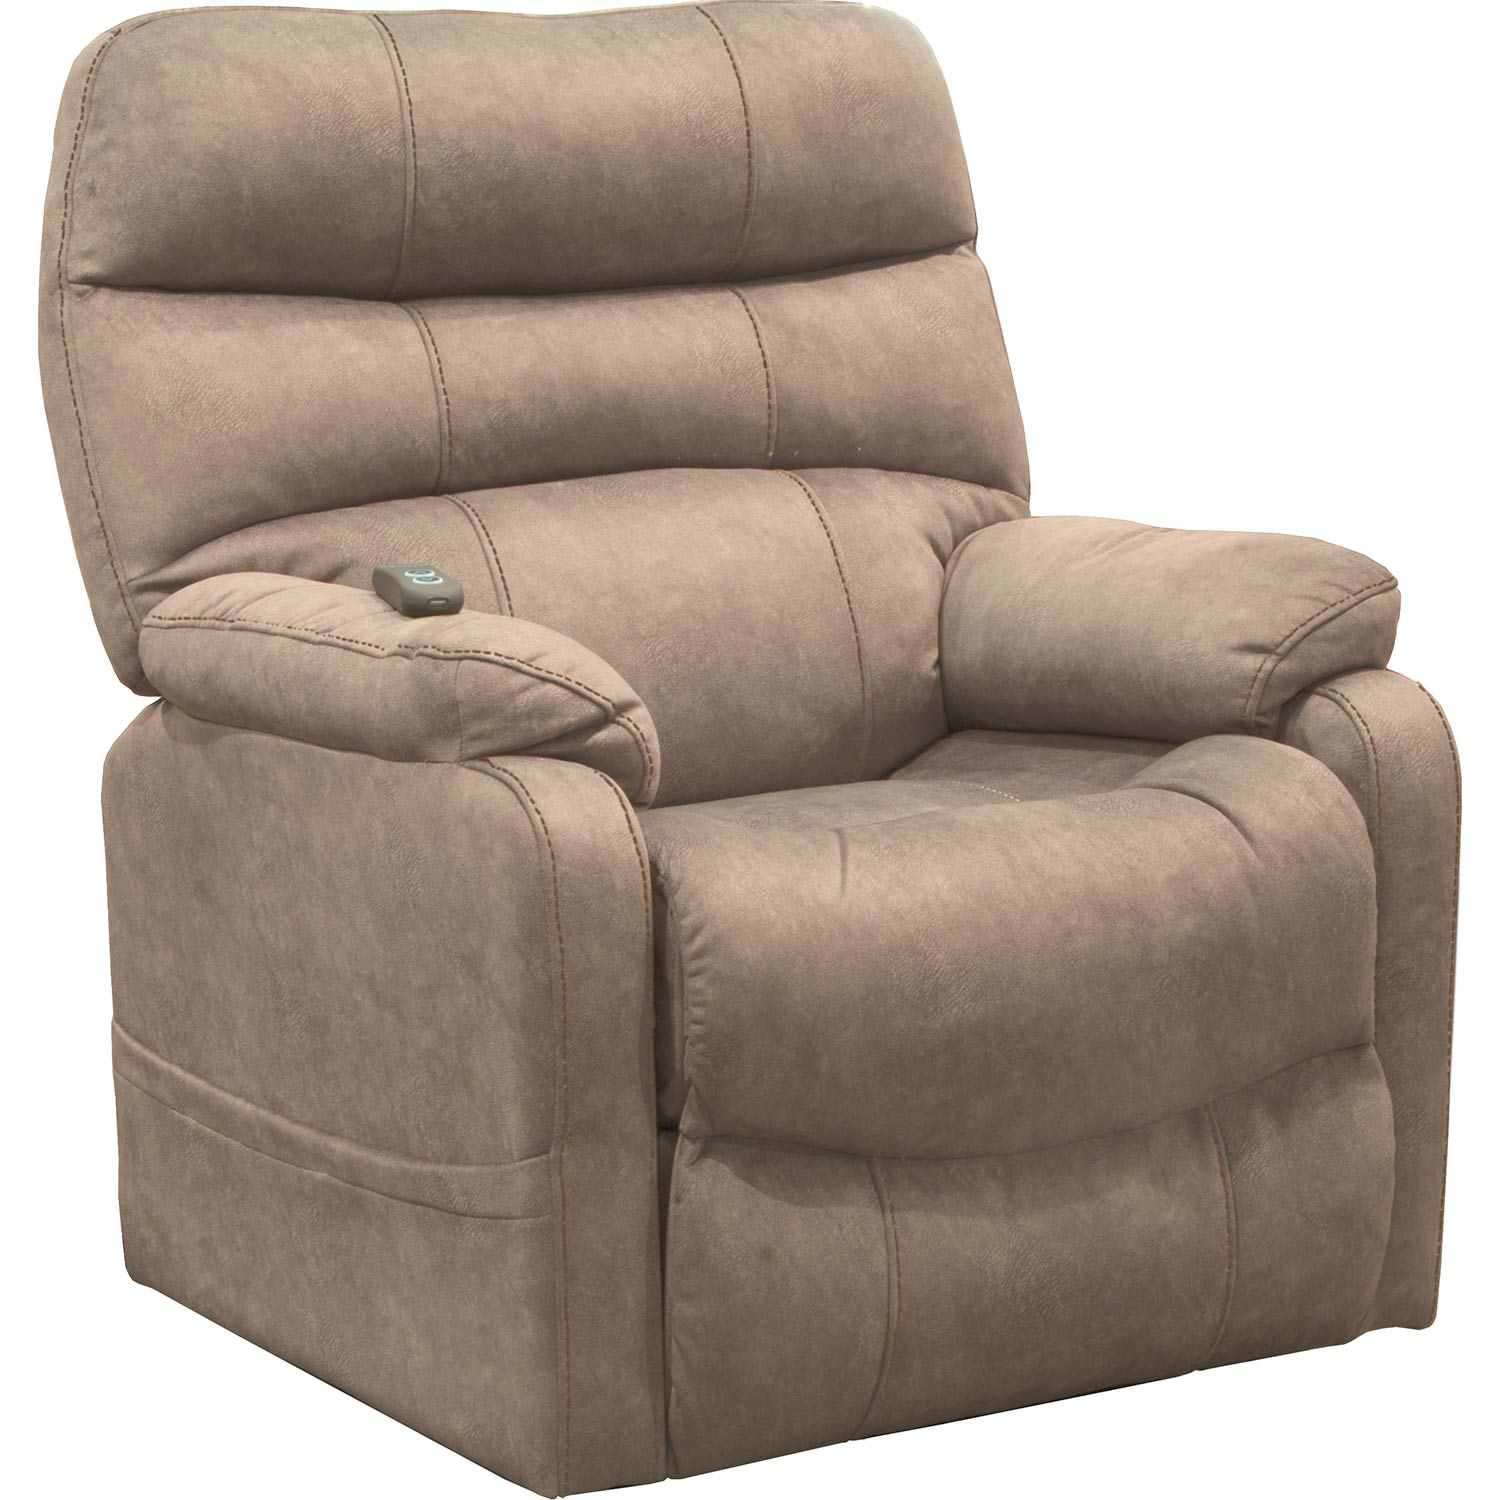 CatNapper Buckley Power Lift Recliner Chair - Portabella